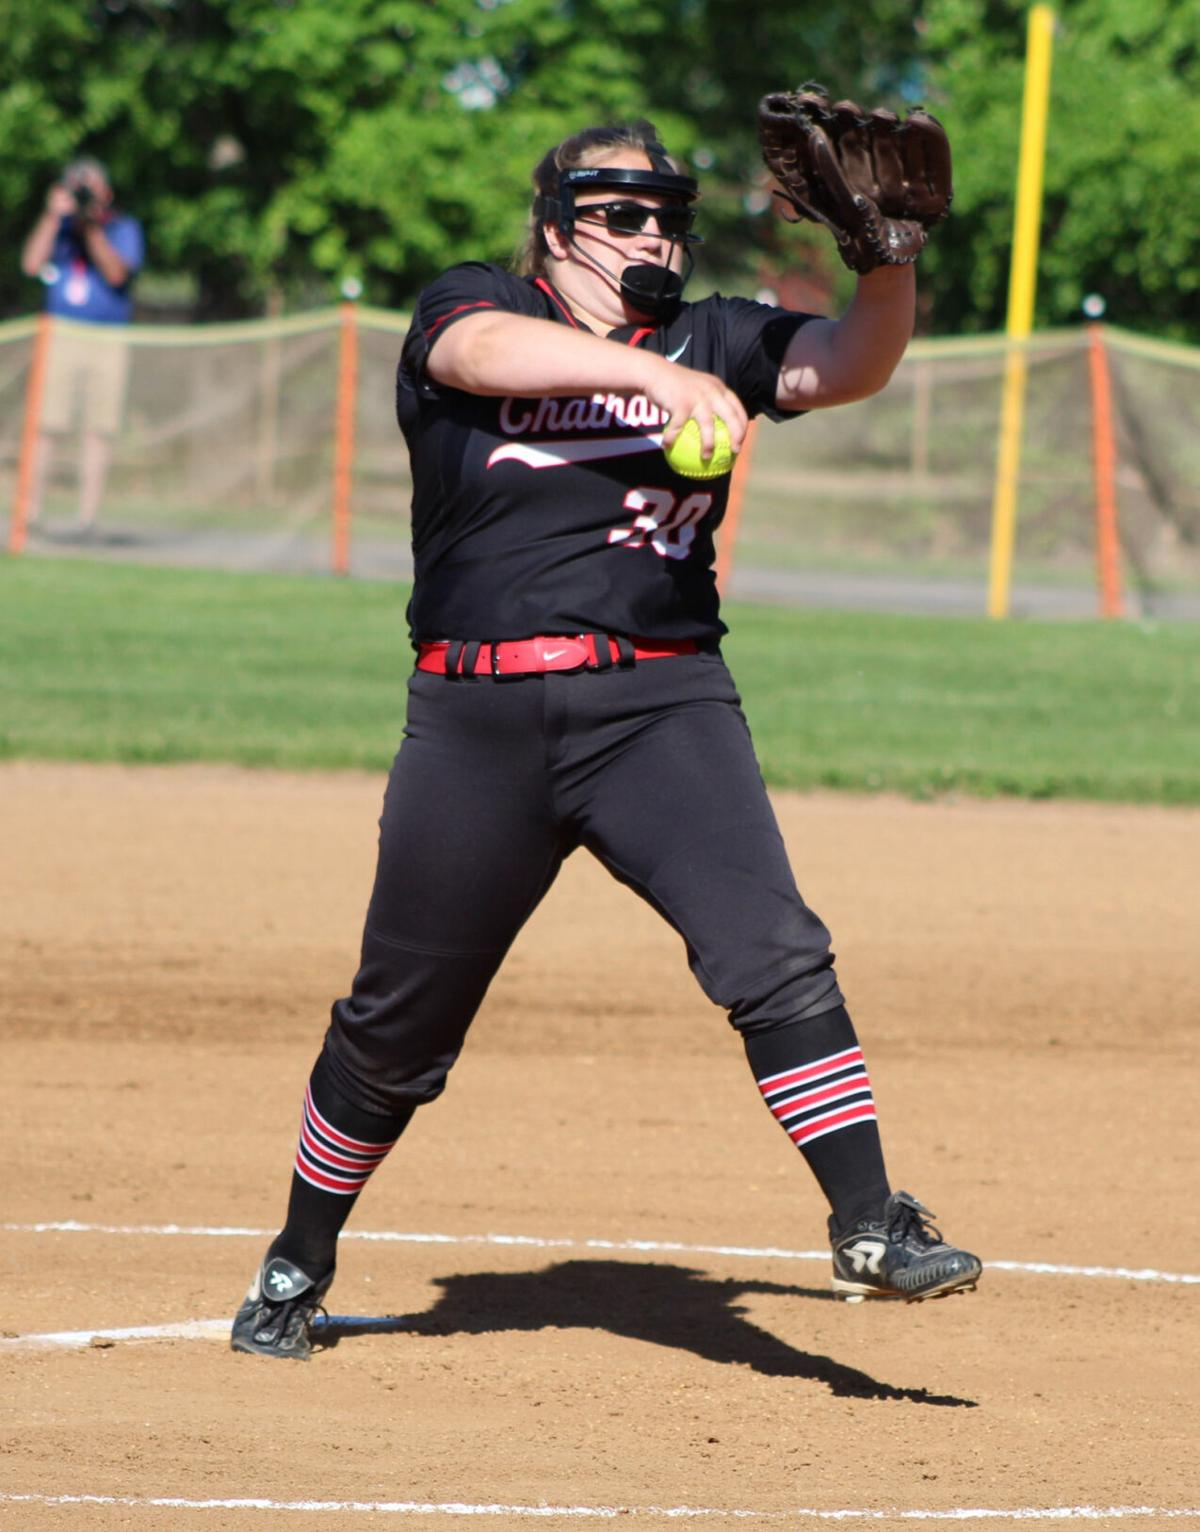 SECTION II SOFTBALL: Panthers shutout Bulldogs in quarterfinals